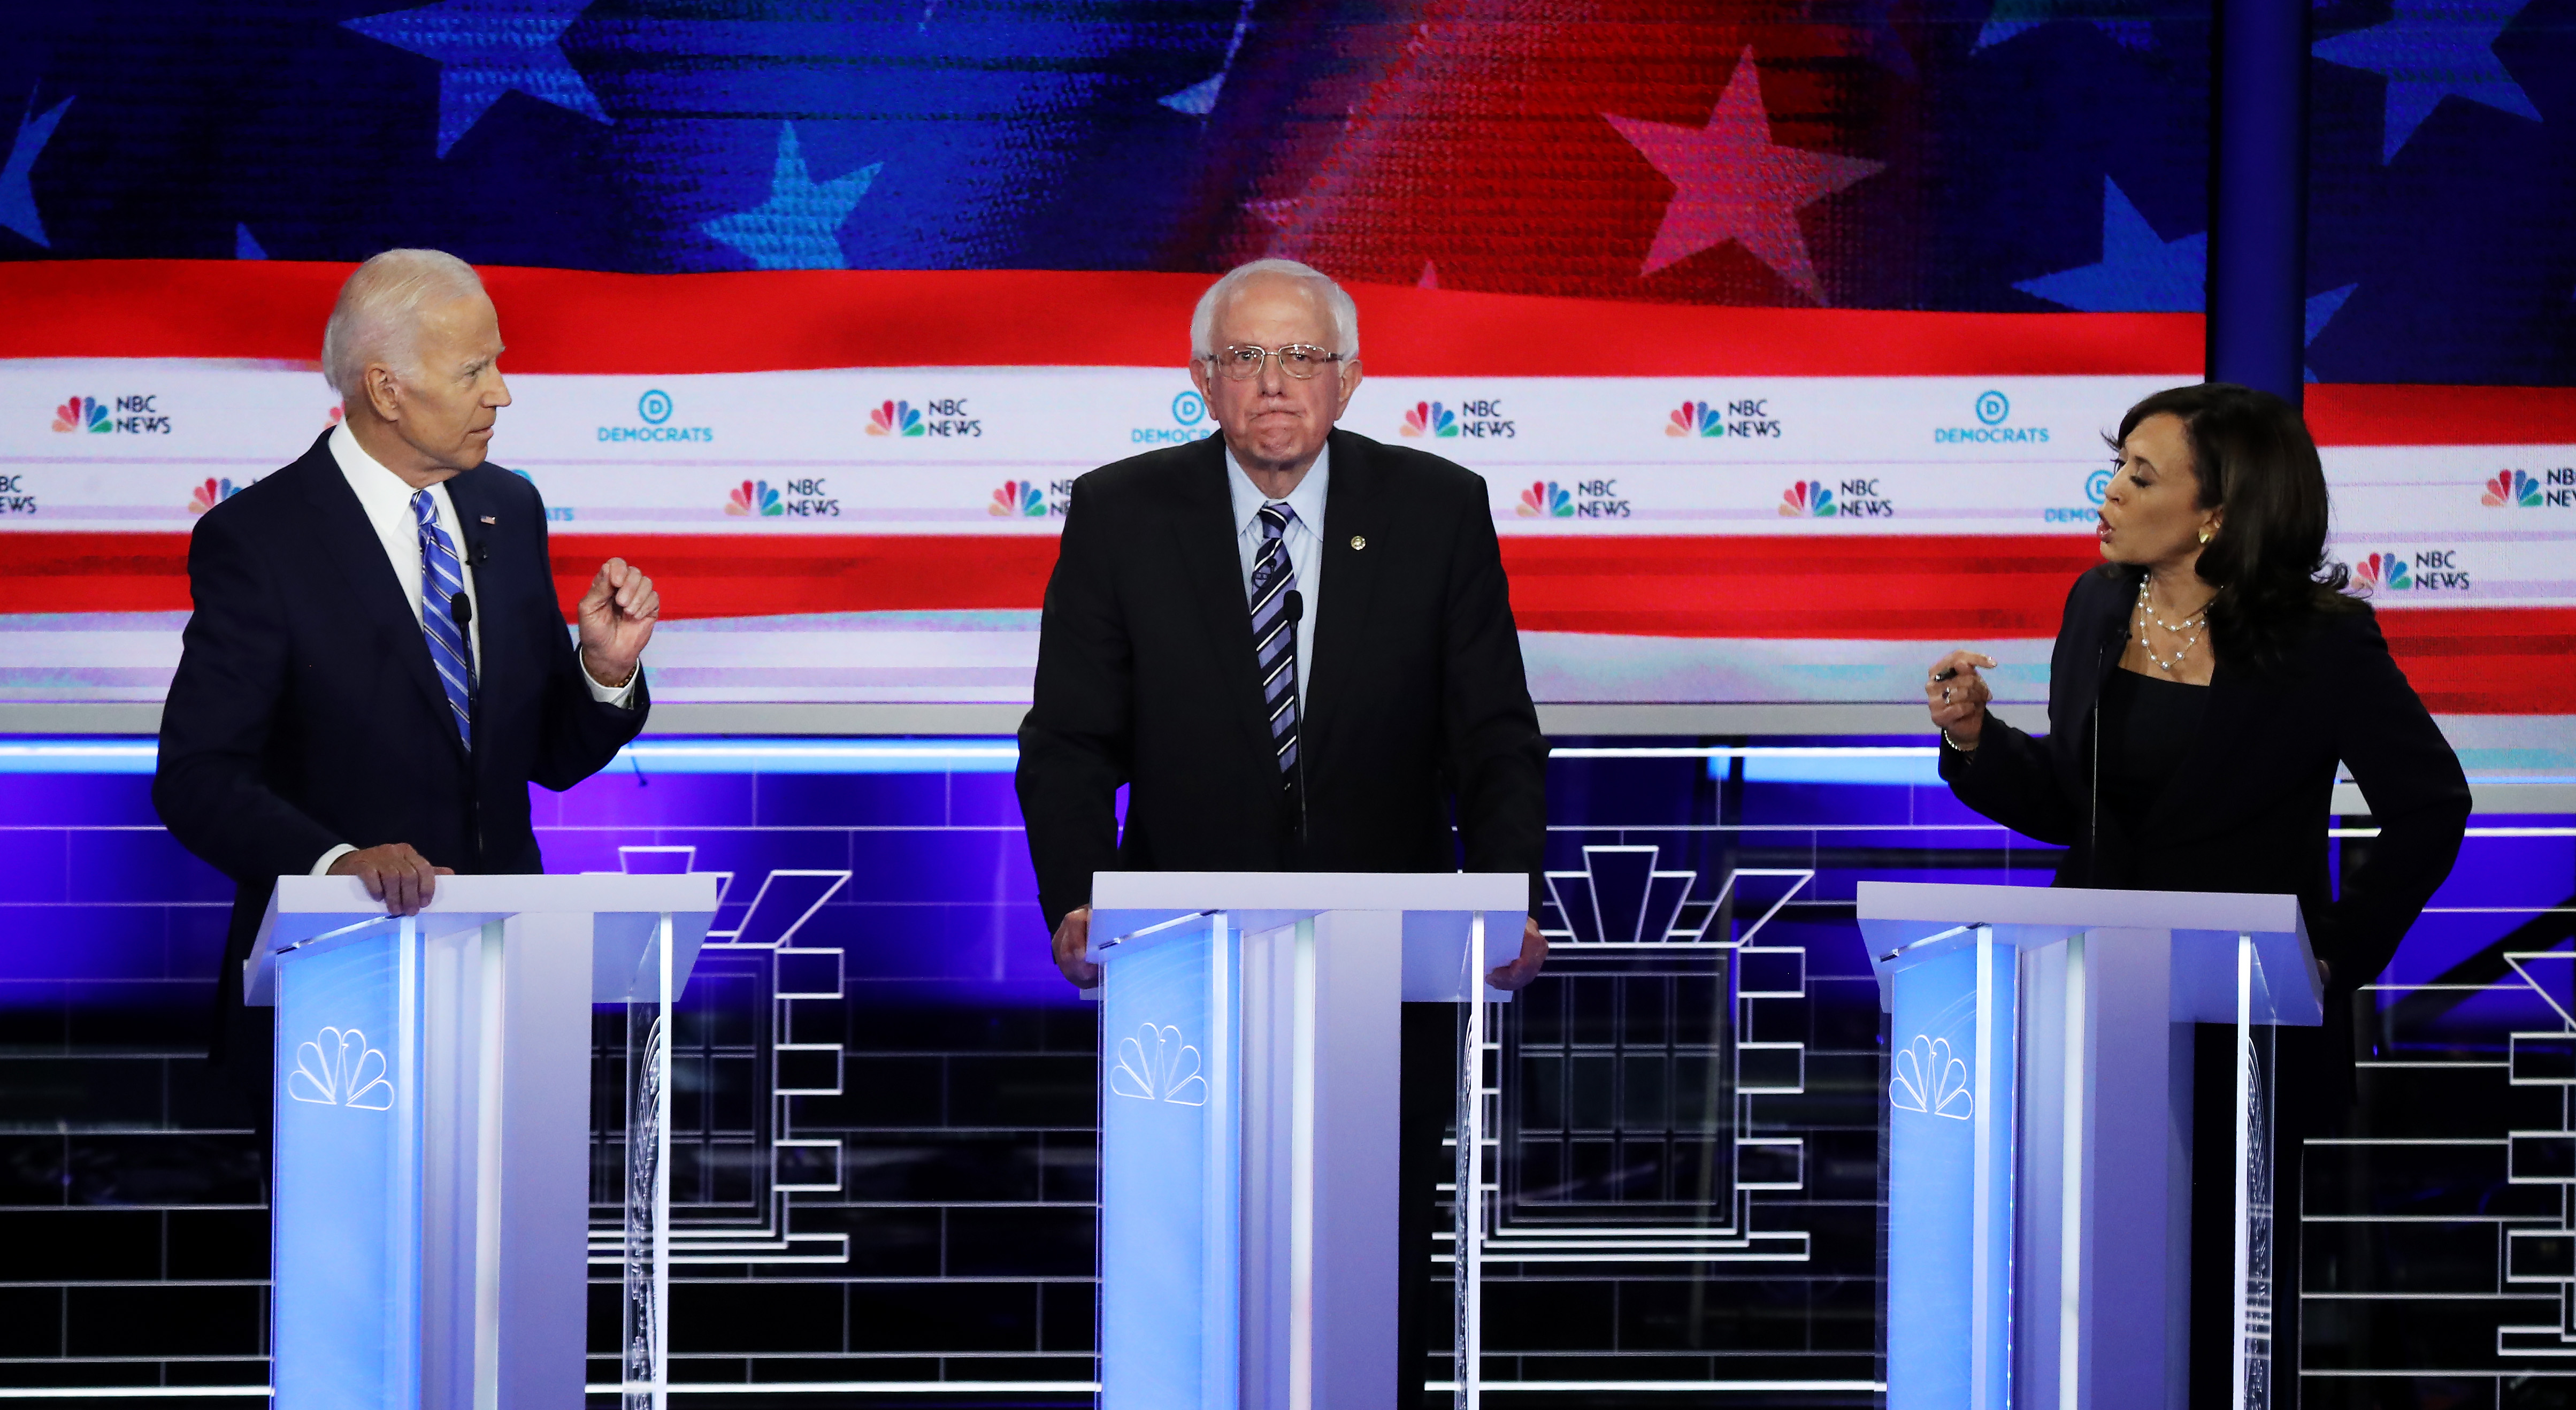 Sen. Kamala Harris (R) (D-CA) and former Vice President Joe Biden (L) speak as Sen. Bernie Sanders (I-VT) looks on during the second night of the first Democratic presidential debate on June 27, 2019 in Miami, Florida. A field of 20 Democratic presidential candidates was split into two groups of 10 for the first debate of the 2020 election, taking place over two nights at Knight Concert Hall of the Adrienne Arsht Center for the Performing Arts of Miami-Dade County, hosted by NBC News, MSNBC, and Telemundo. (Photo by Drew Angerer/Getty Images)